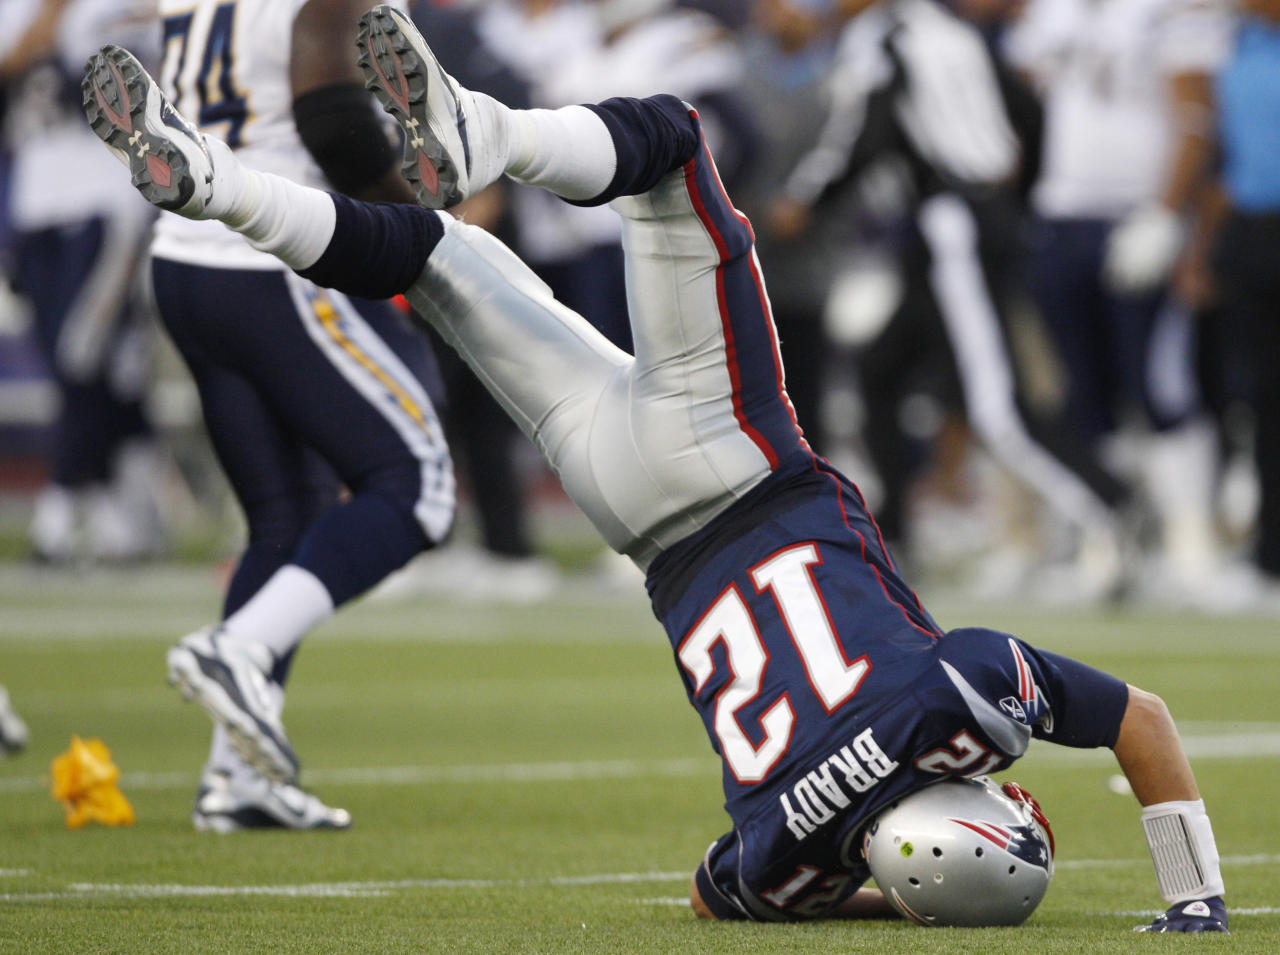 New England Patriots quarterback Tom Brady (12) flips over on his head after he was hit hard by San Diego Chargers defensive tackle Cam Thomas, not seen, in the second half of an NFL football game in Foxborough, Mass., Sunday, Sept. 18, 2011. (AP Photo/Charles Krupa)